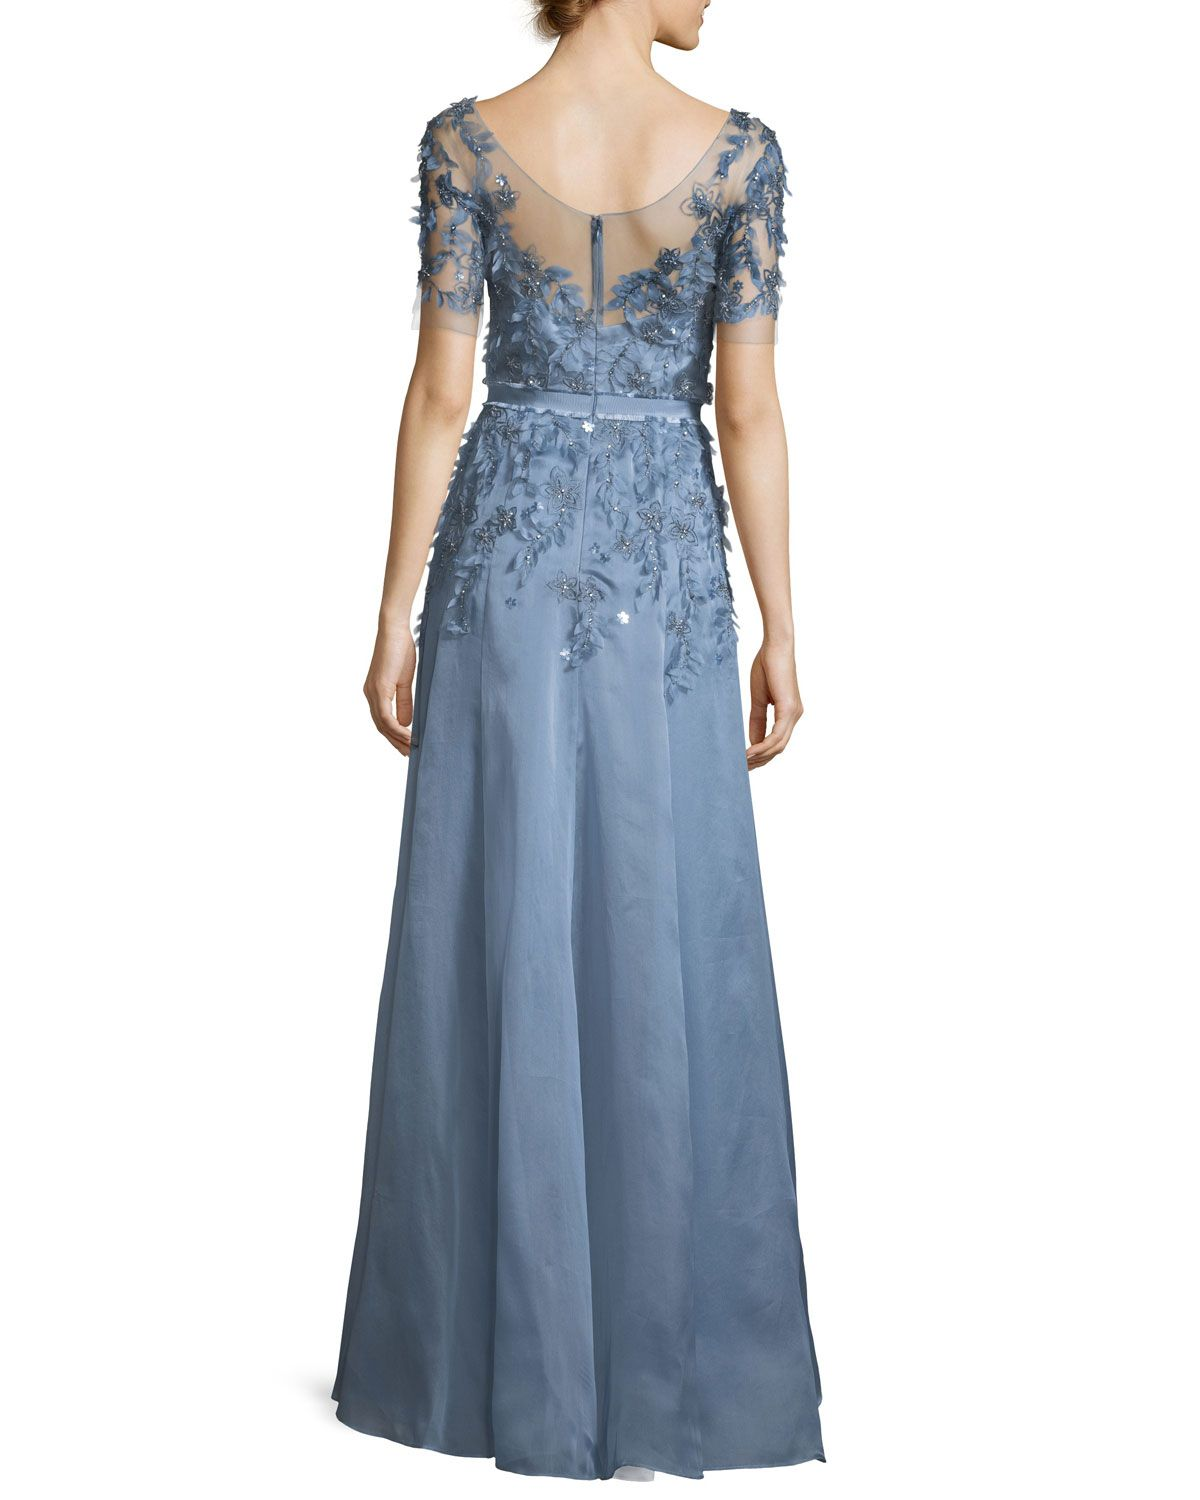 Short-Sleeve 3-D Floral Embroidered Evening Gown | Jenny packham ...